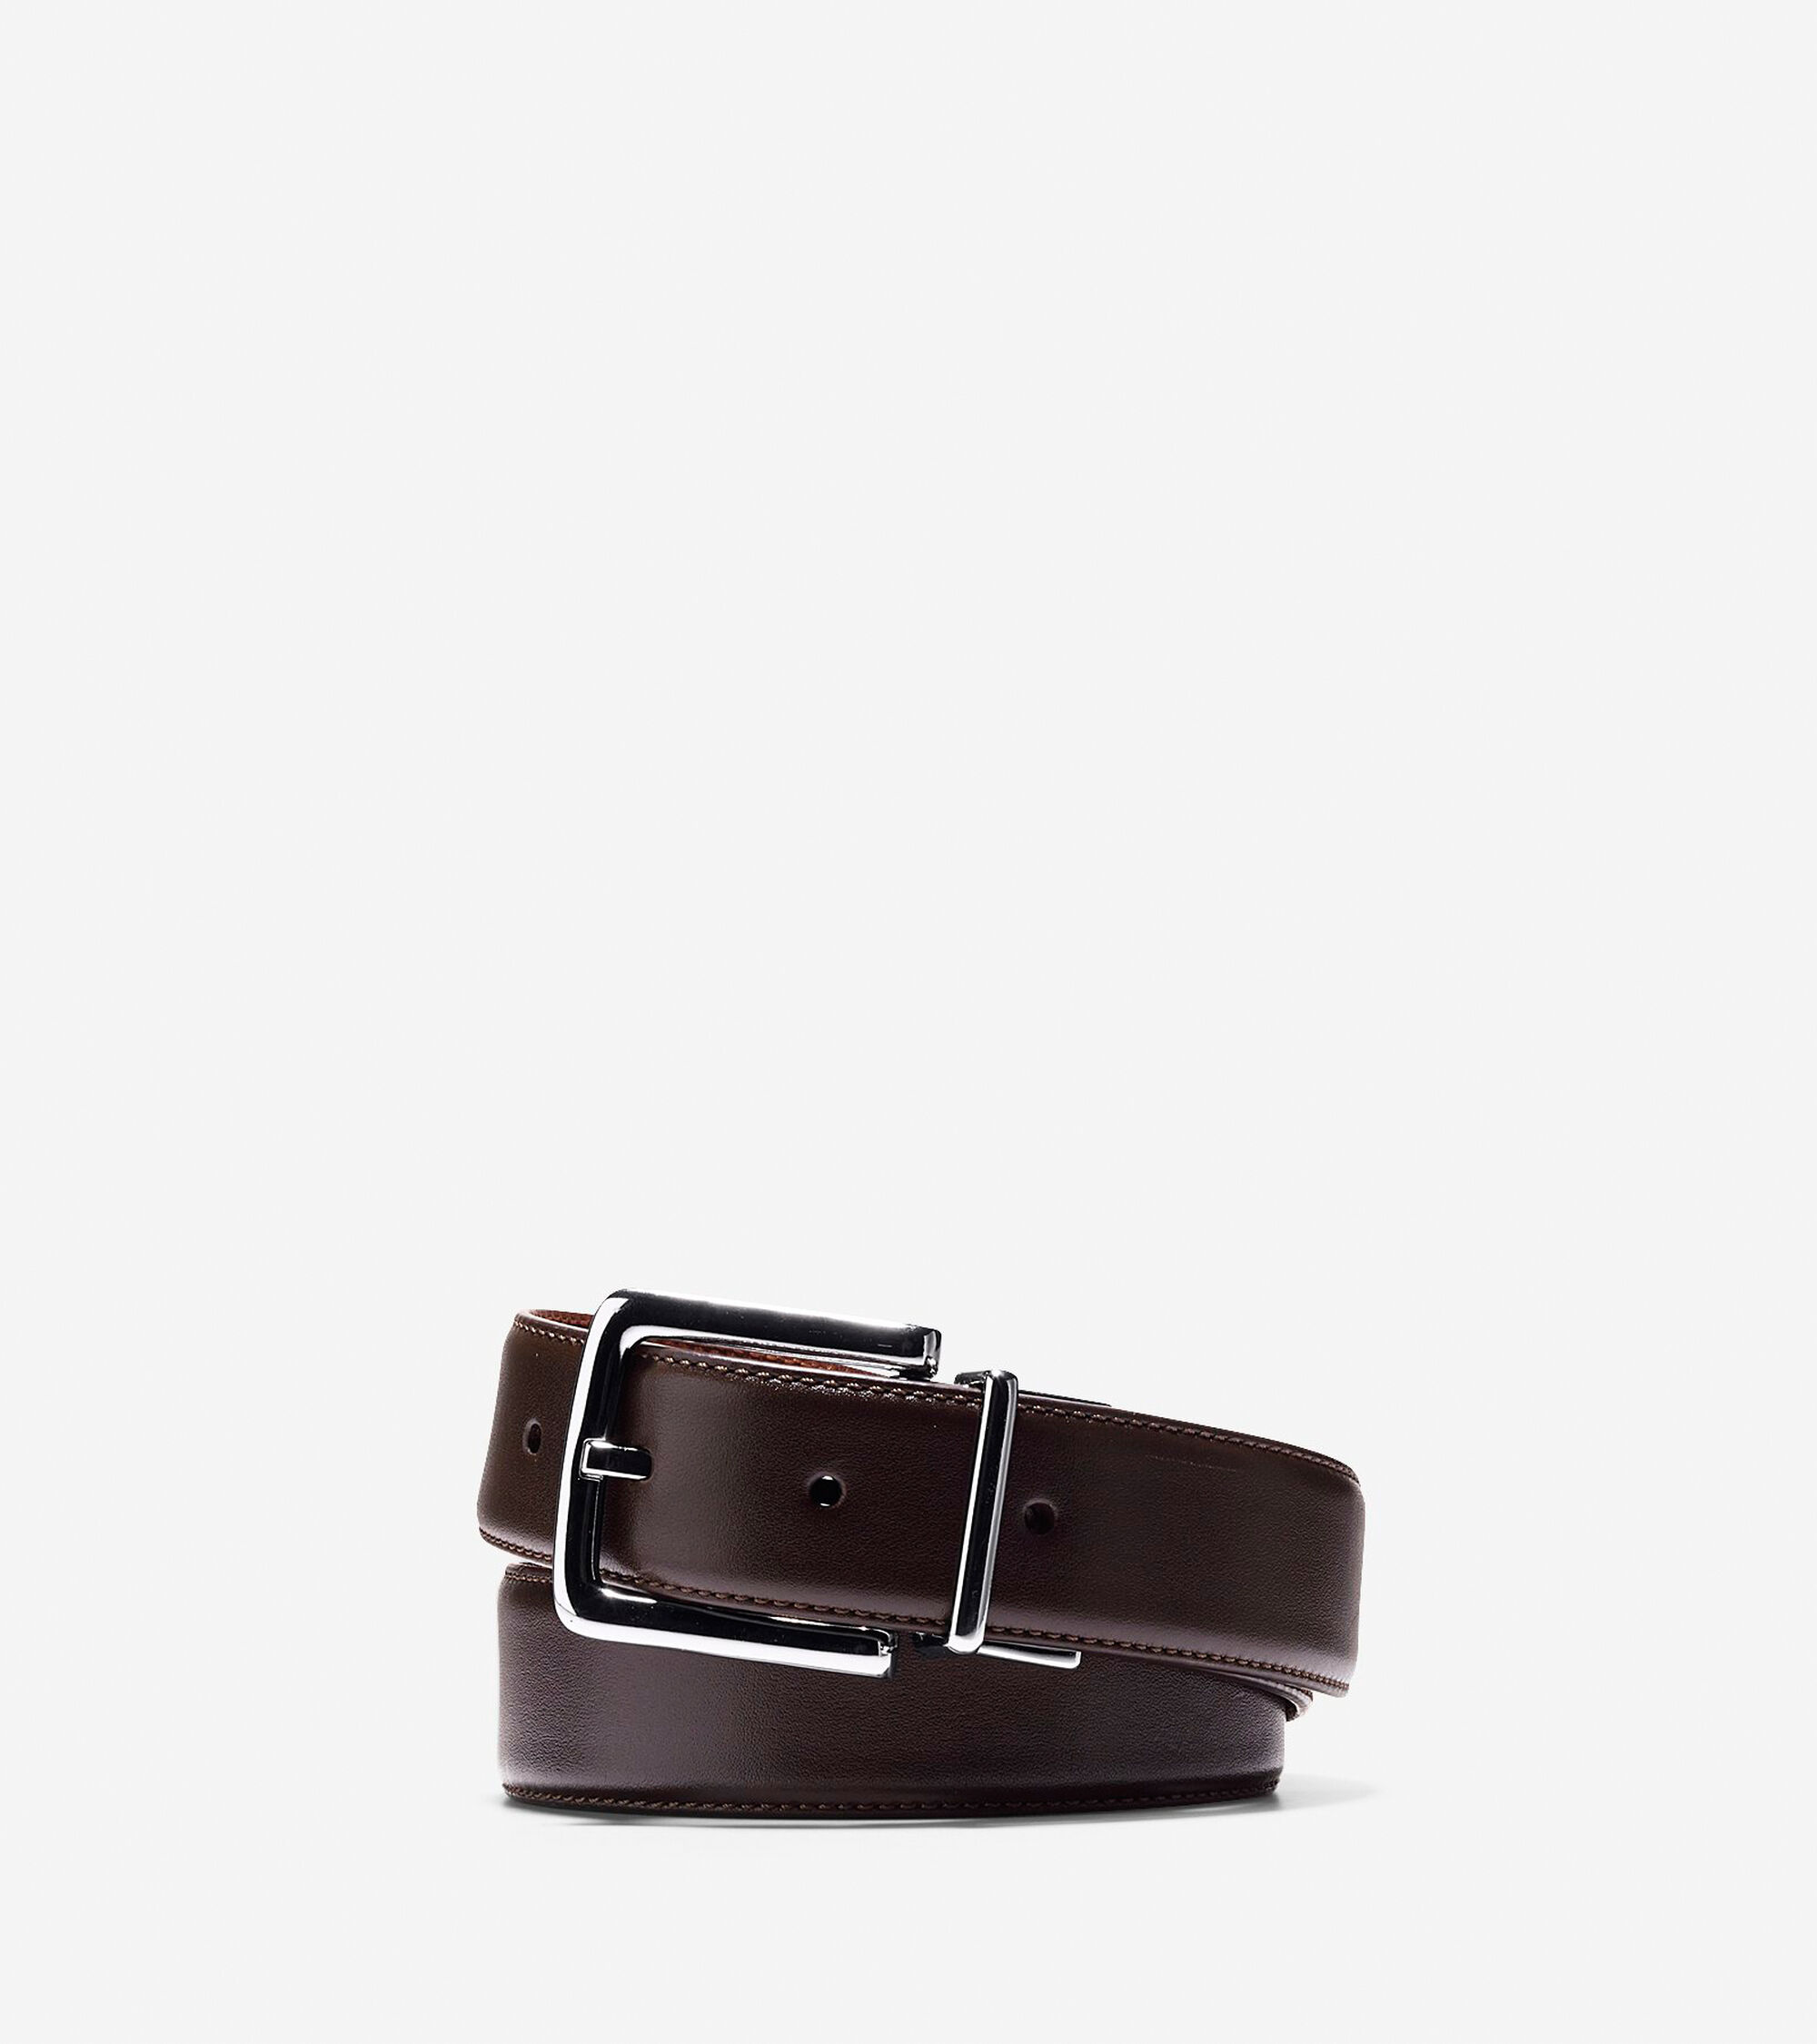 32mm reversible dress leather belt in chocolate